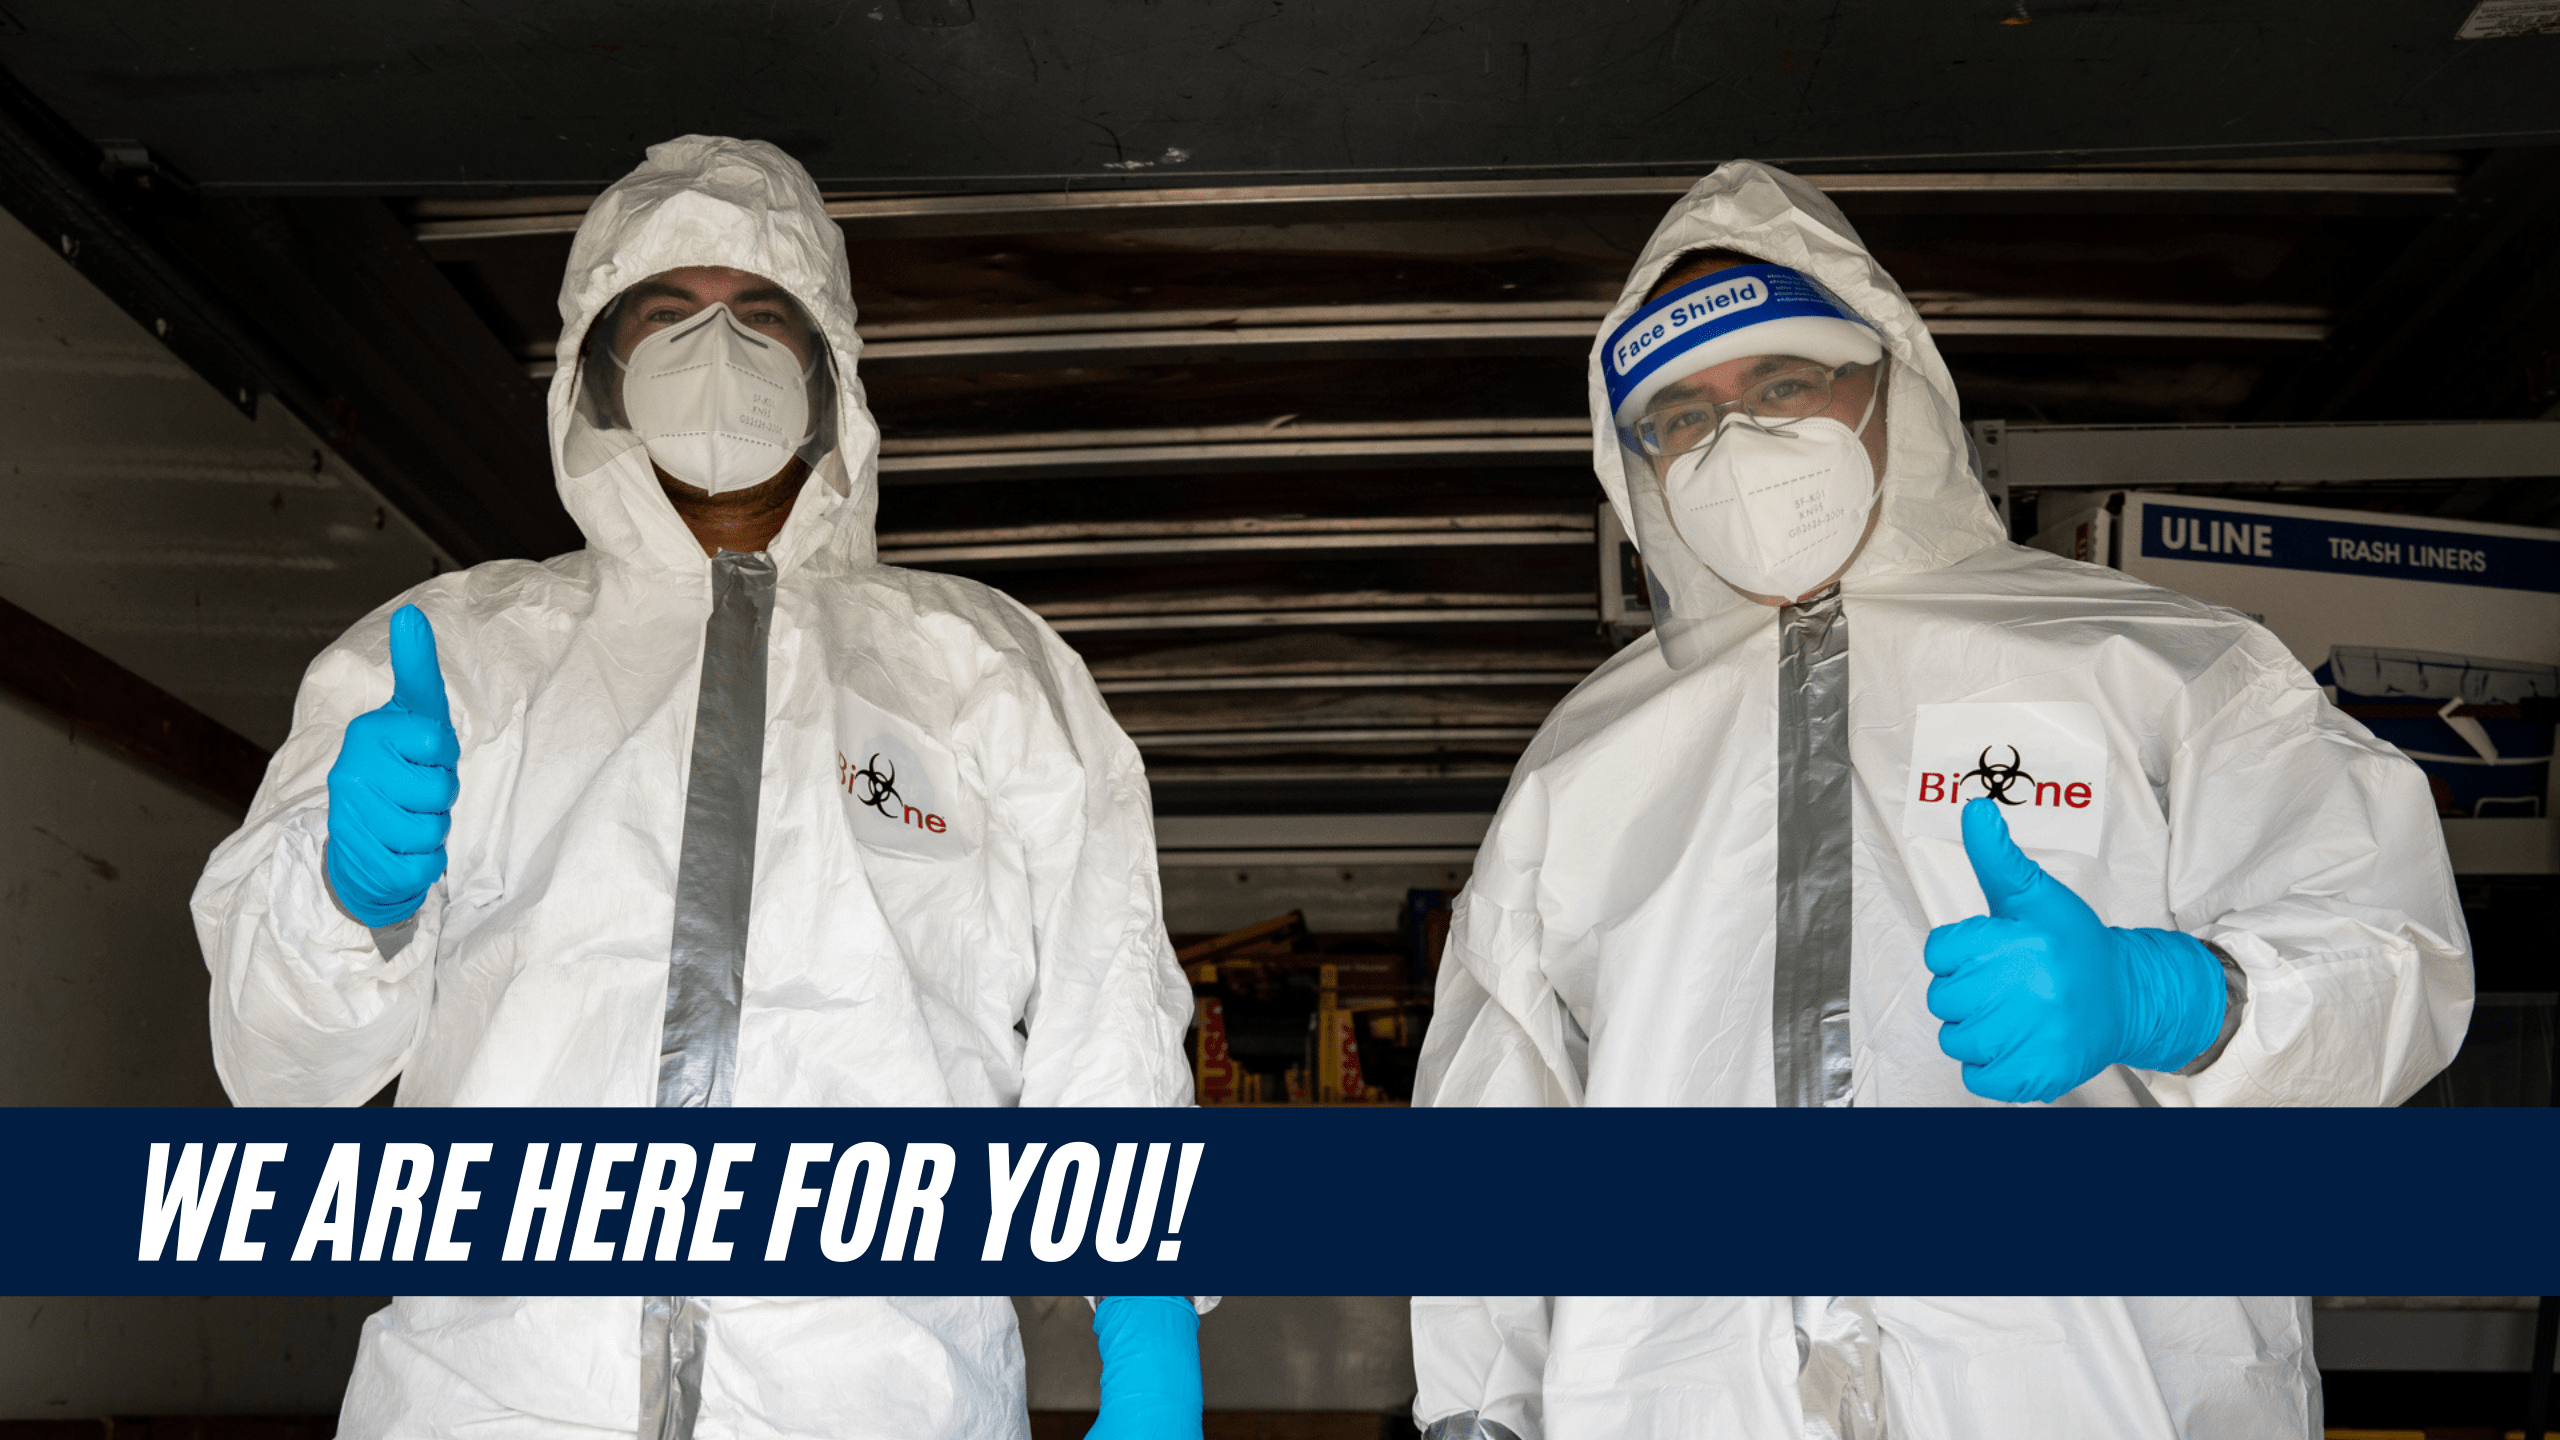 Two Bio-One service technicians dressed in white hazmat suits, N-95 masks and face shield giving a thumbs up.   We Are Here For You is on a title banner on the bottom left of the image.   Bio-One logo is on the left breast of both hazmat suits.